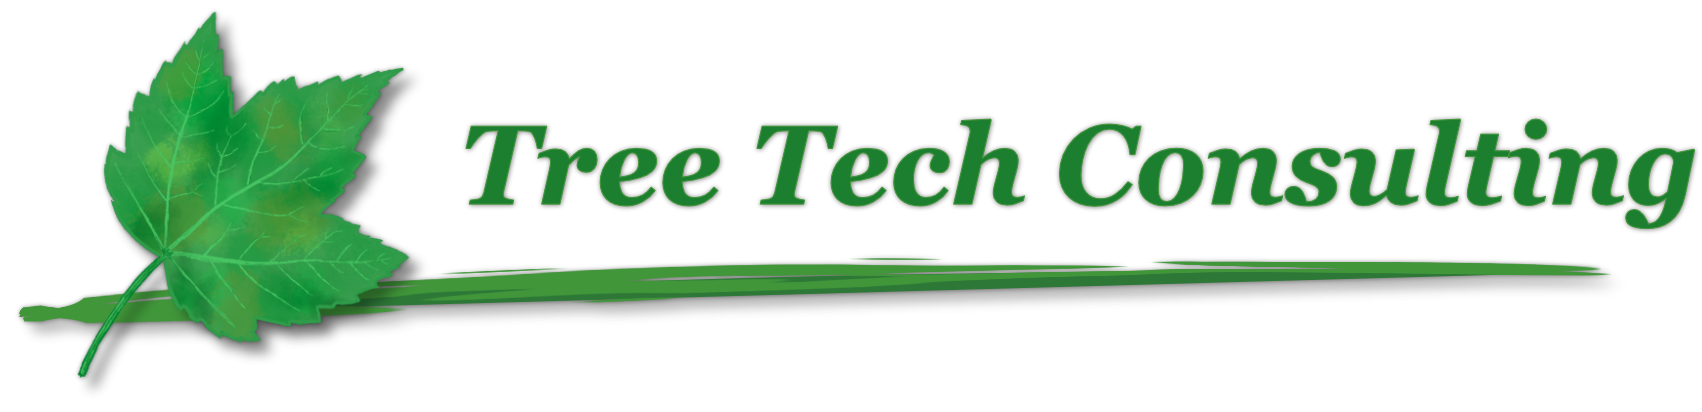 Tree Tech Consulting